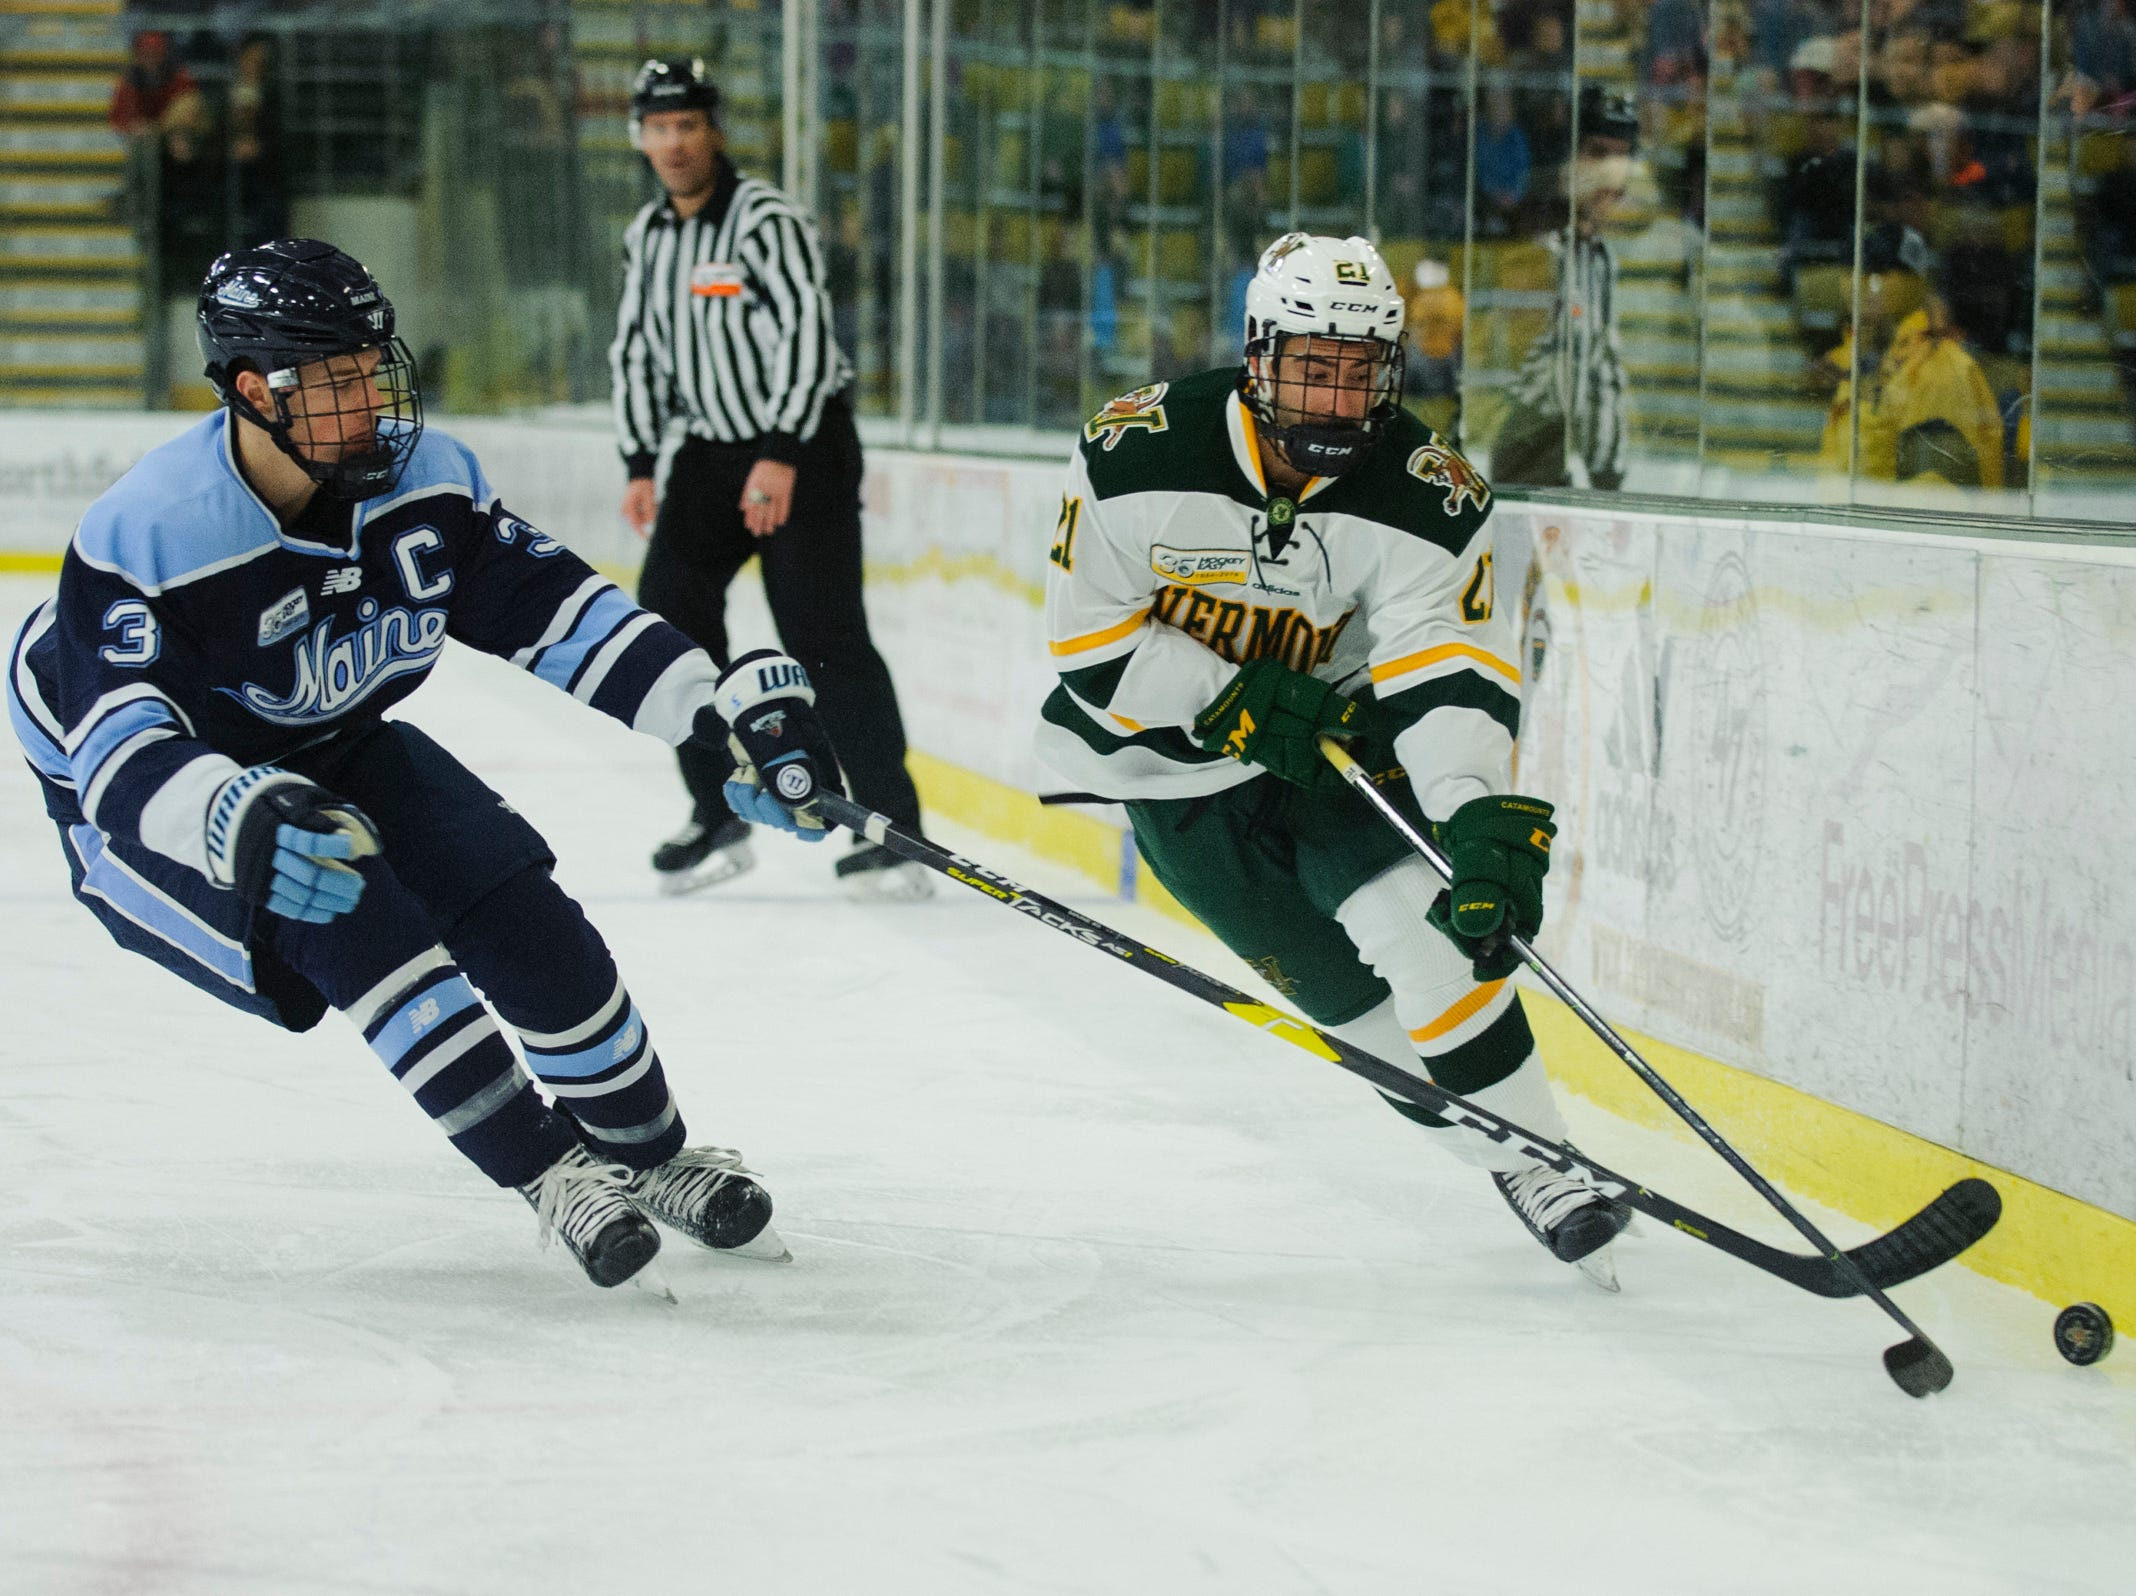 Vermont forward Martin Frechette (21) skates past Maine's Rob Michel (3) during the men's hockey game between the Mine Black Bears and the Vermont Catamounts at Gutterson Field House on Friday night November 30, 2018 in Burlington.